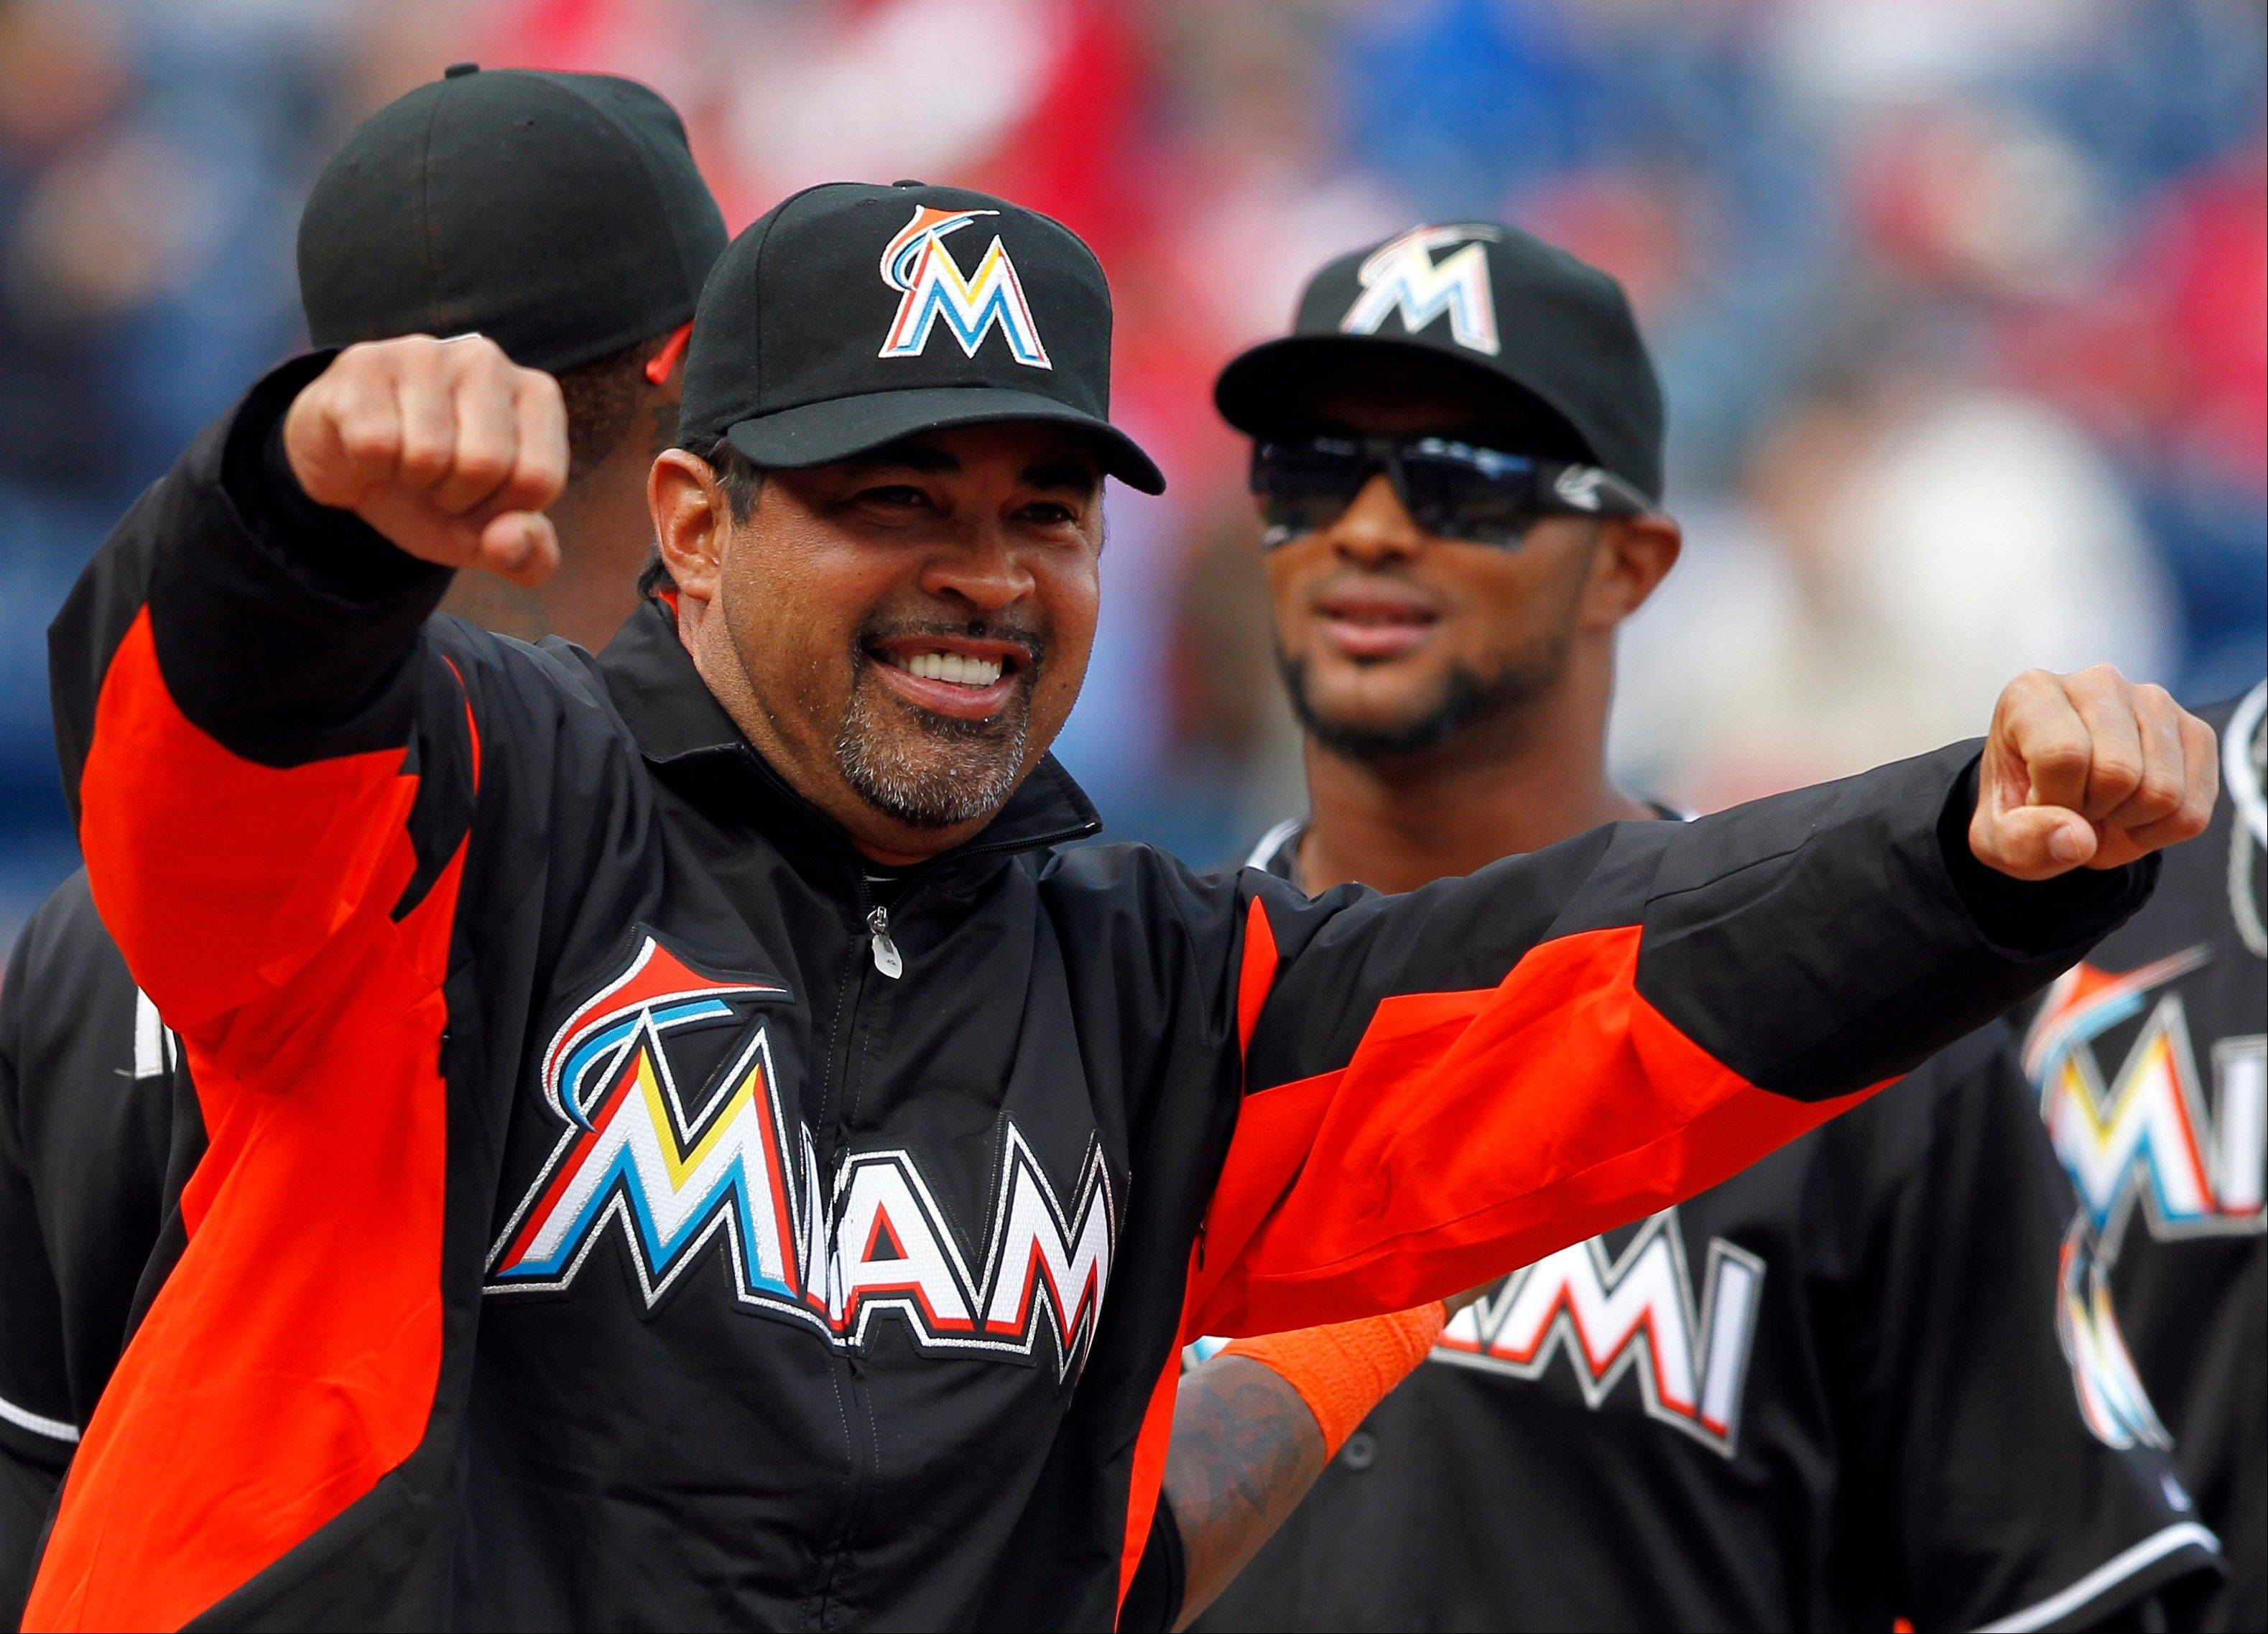 Miami Marlins manager Ozzie Guillen, left, gestures during introductions before the home opener baseball game with the Philadelphia Phillies Monday, April 9, 2012, in Philadelphia.